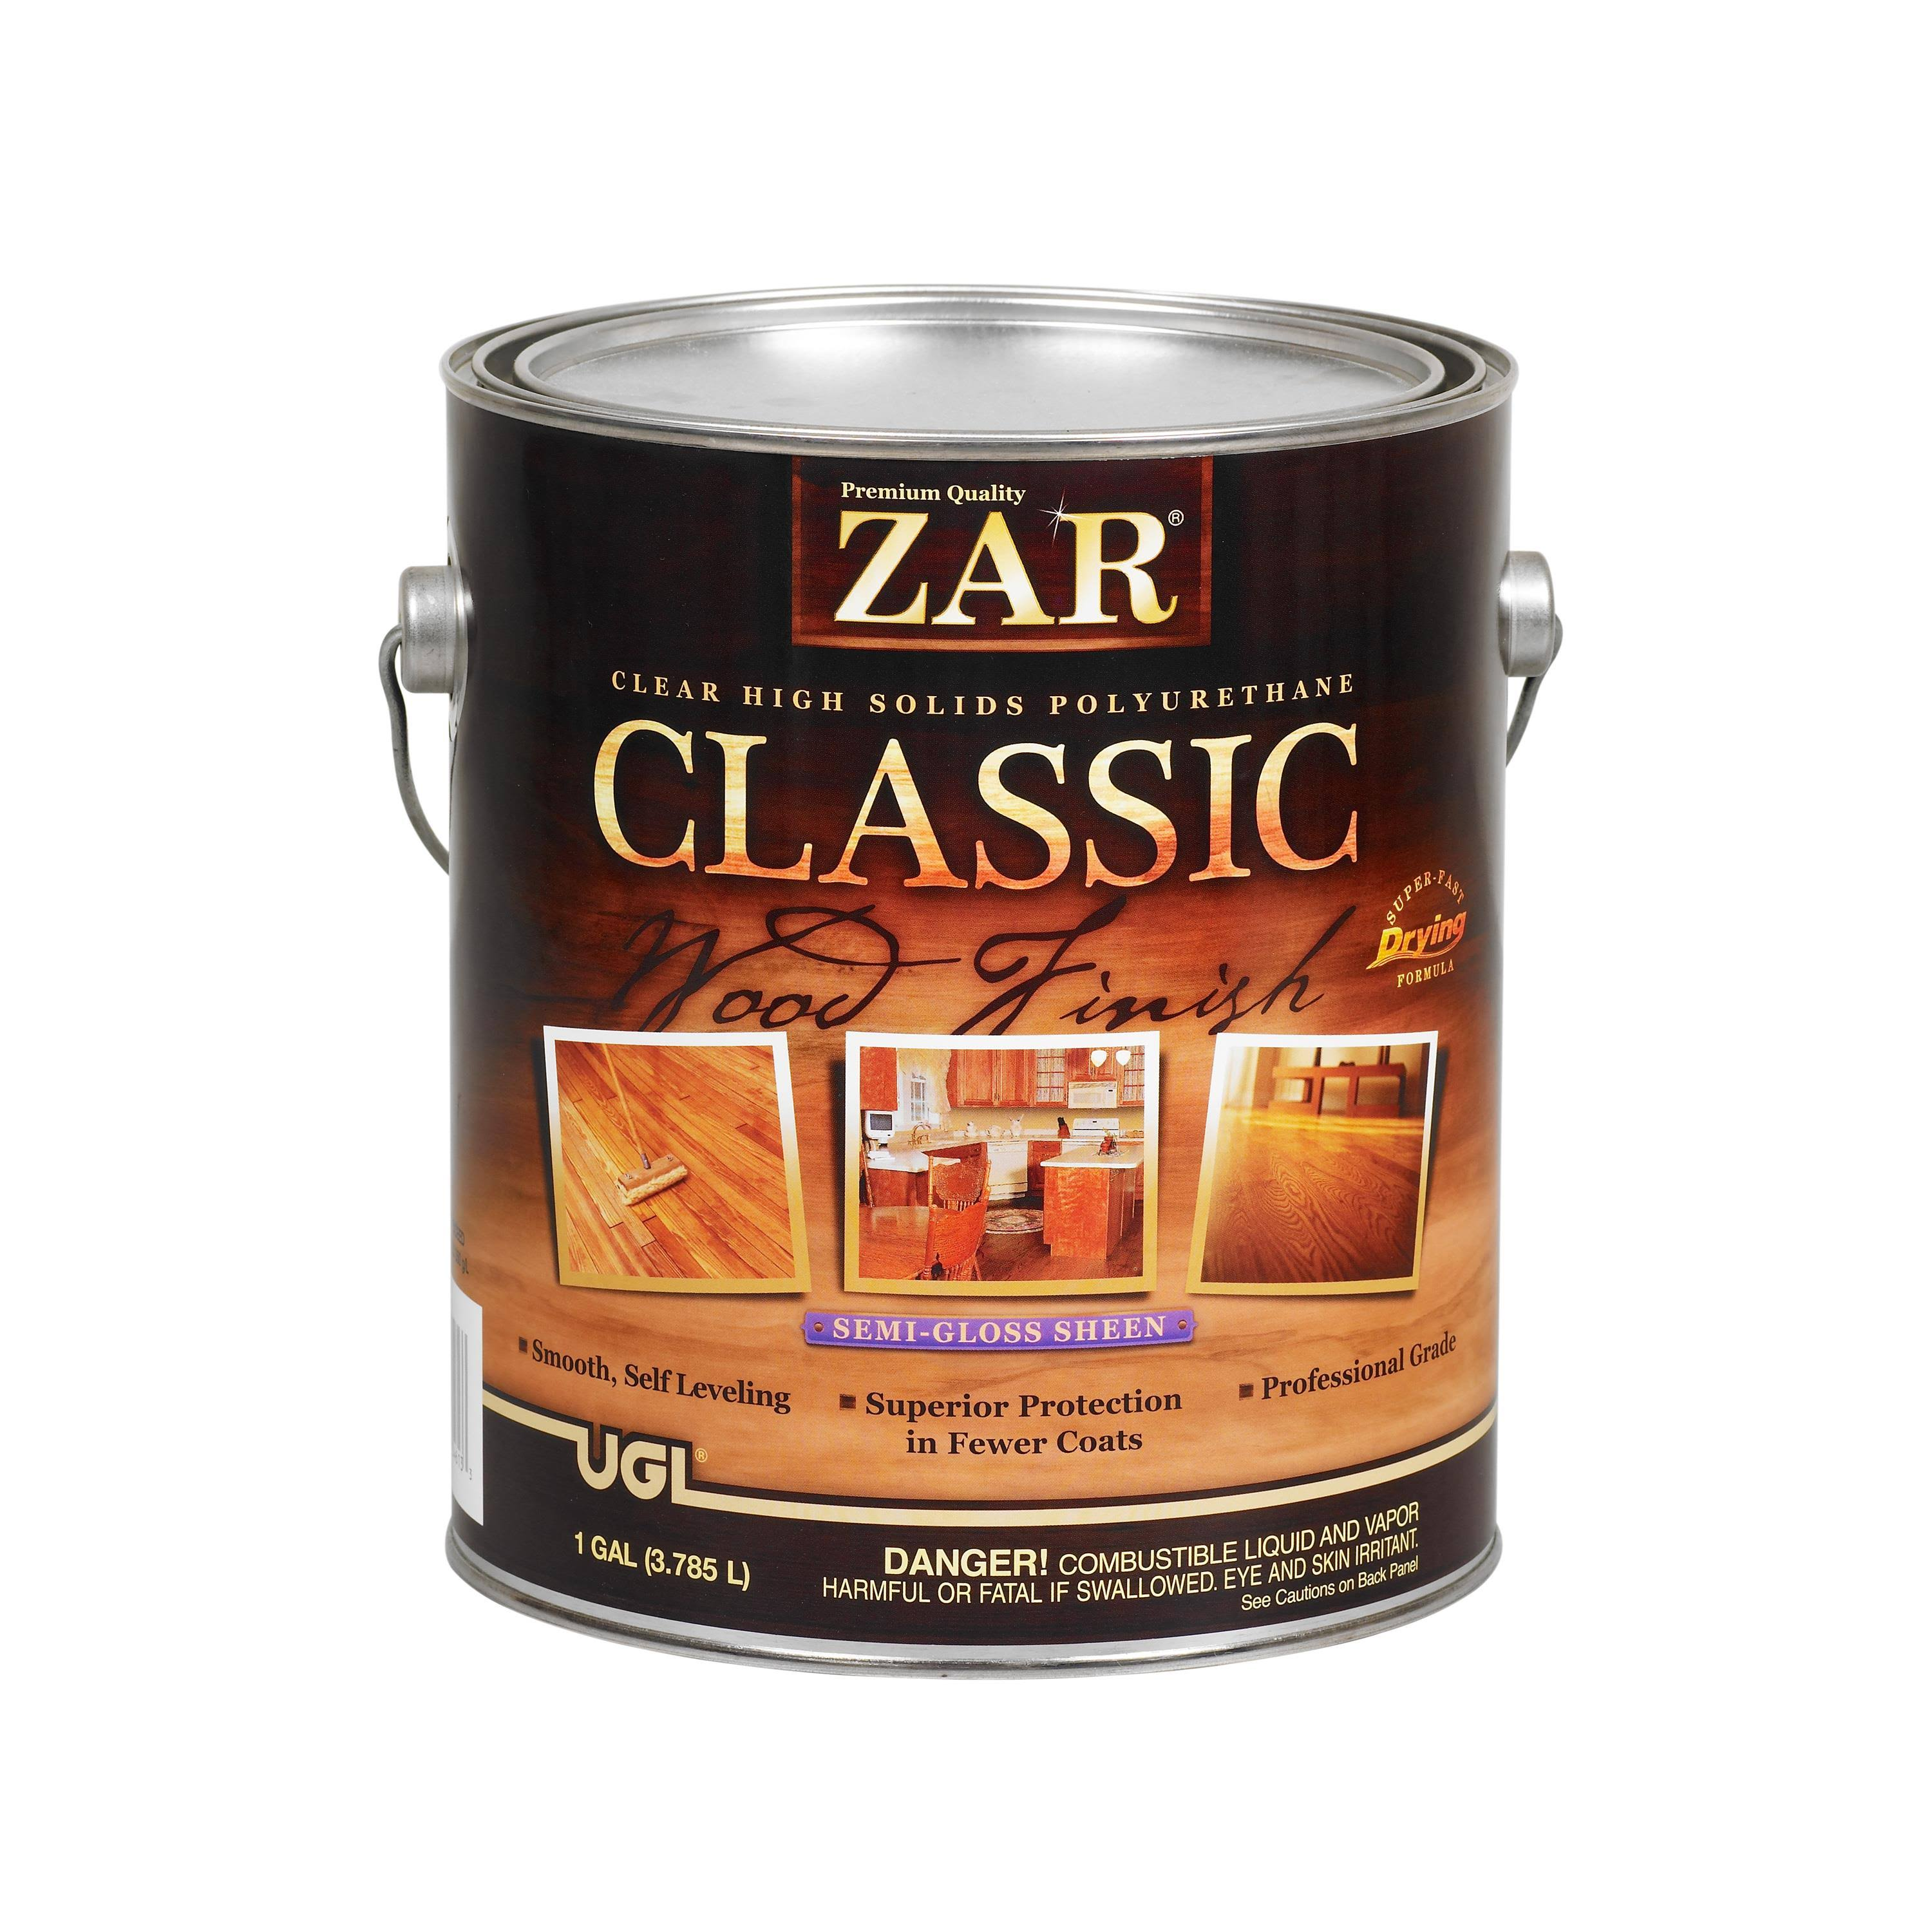 Zar Classic Wood Finish Oil-based Interior Polyurethane - Semi Gloss, 1 Gallon